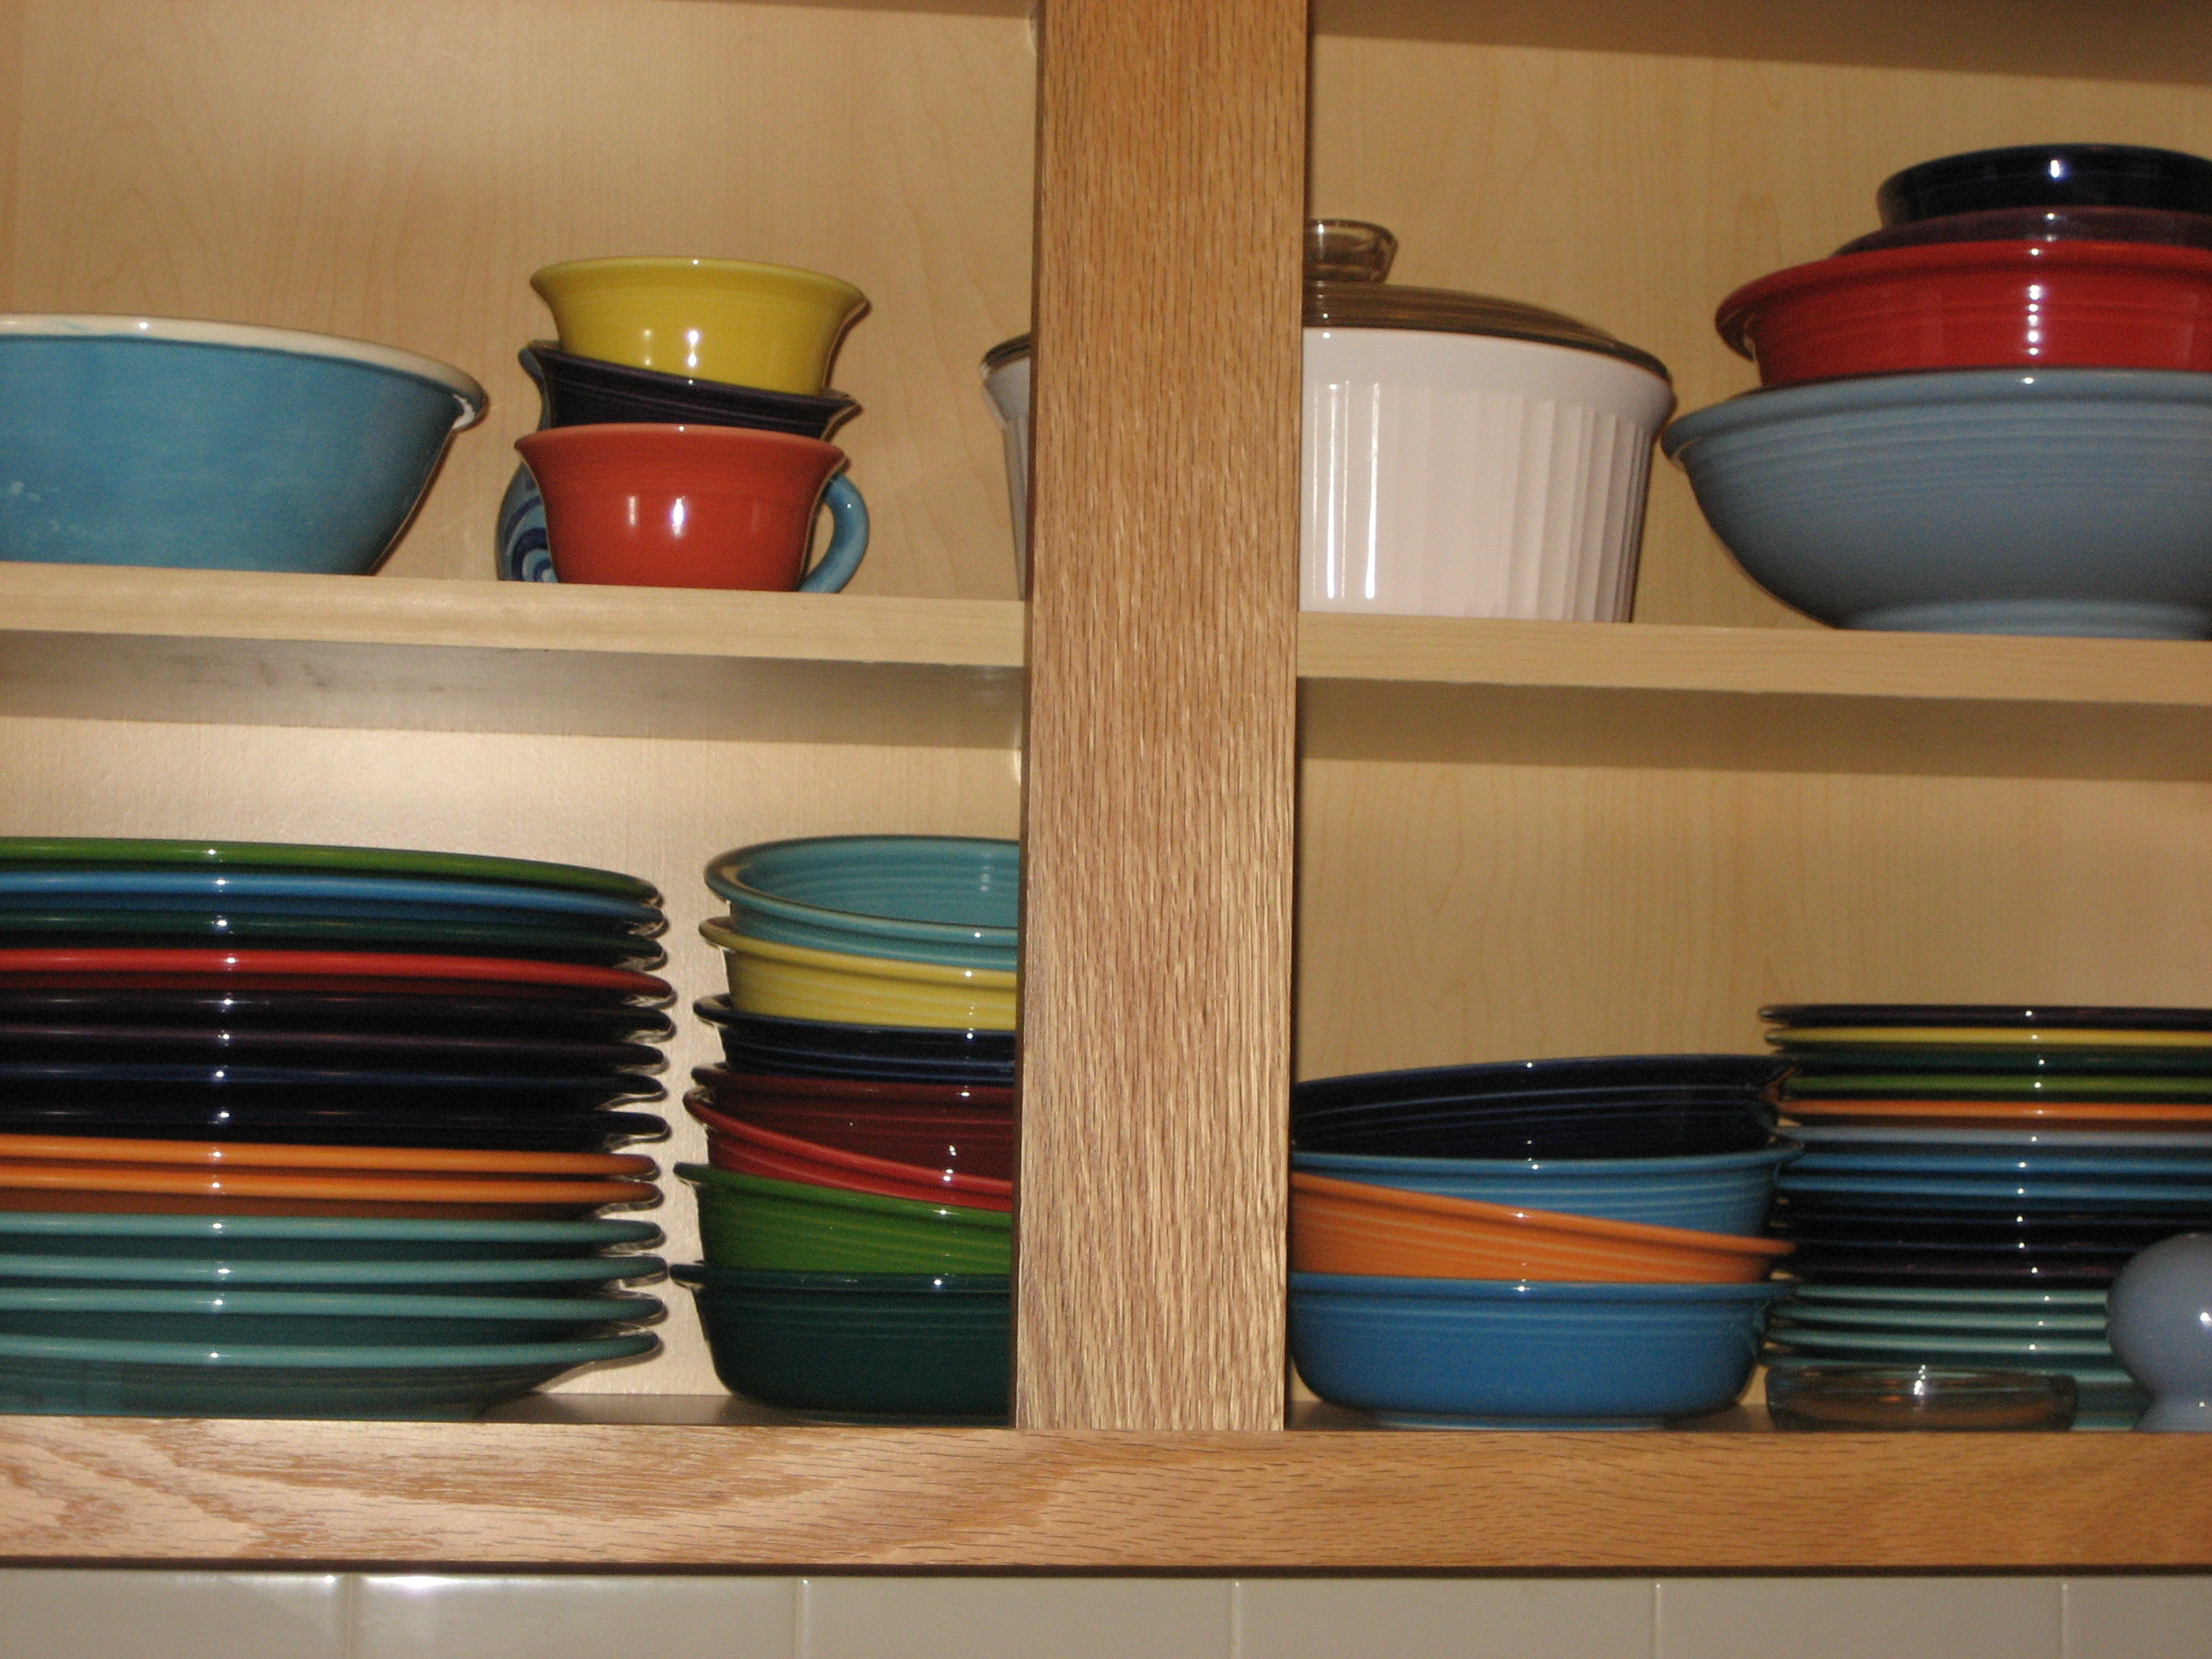 charming collections of bowl and plate by fiestaware for diningware ideas